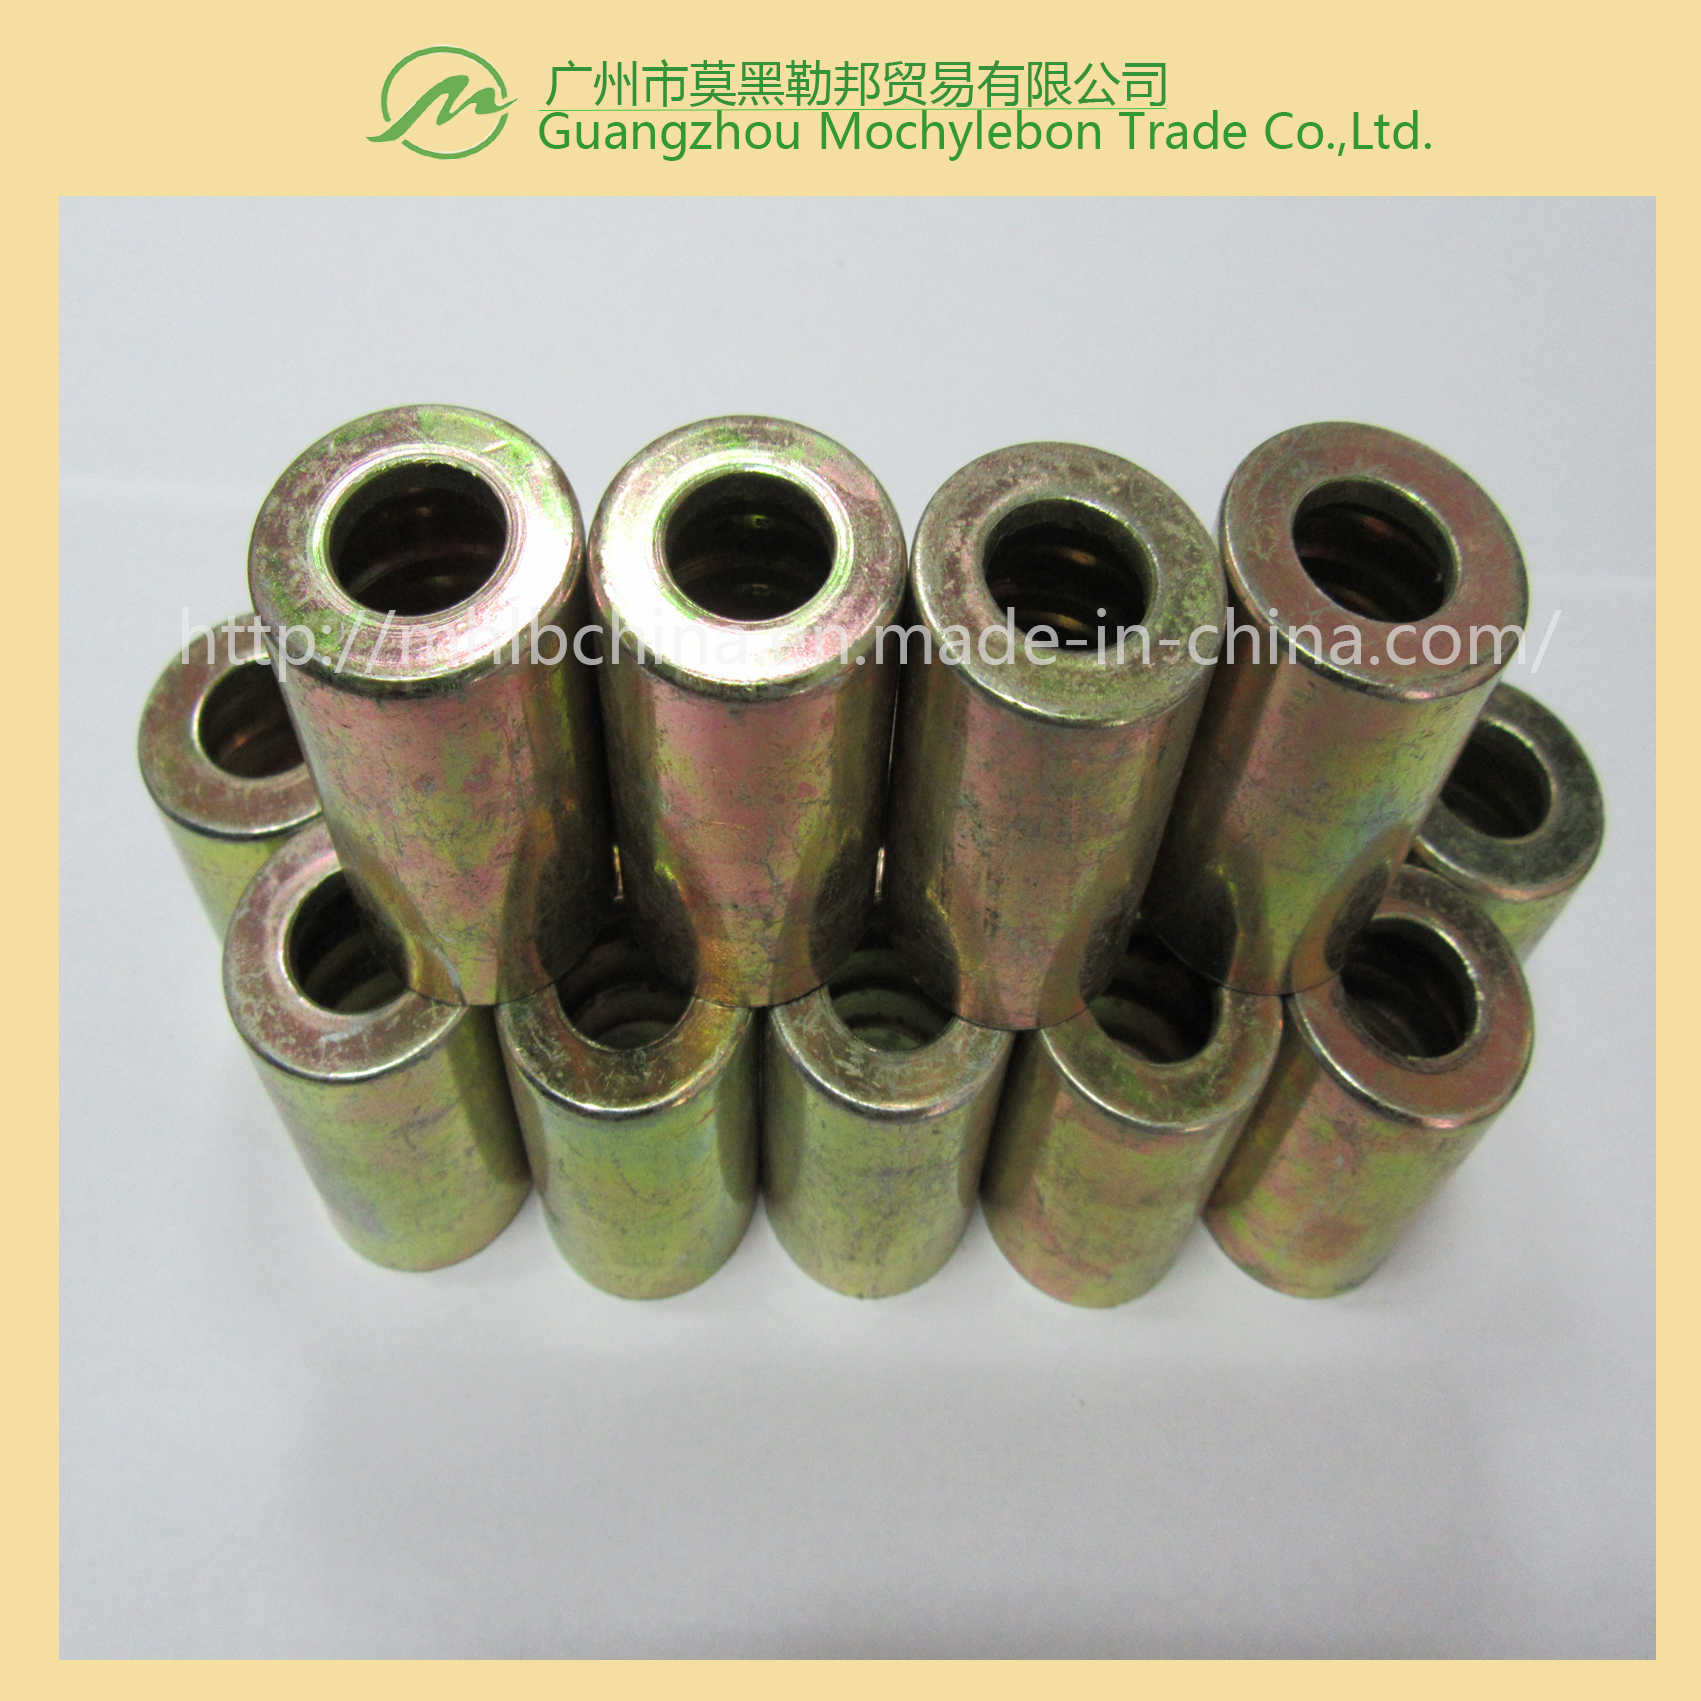 Hydraulic Fittings/Sleeves/Ferrules/Fittings for Hydraulic Hoses